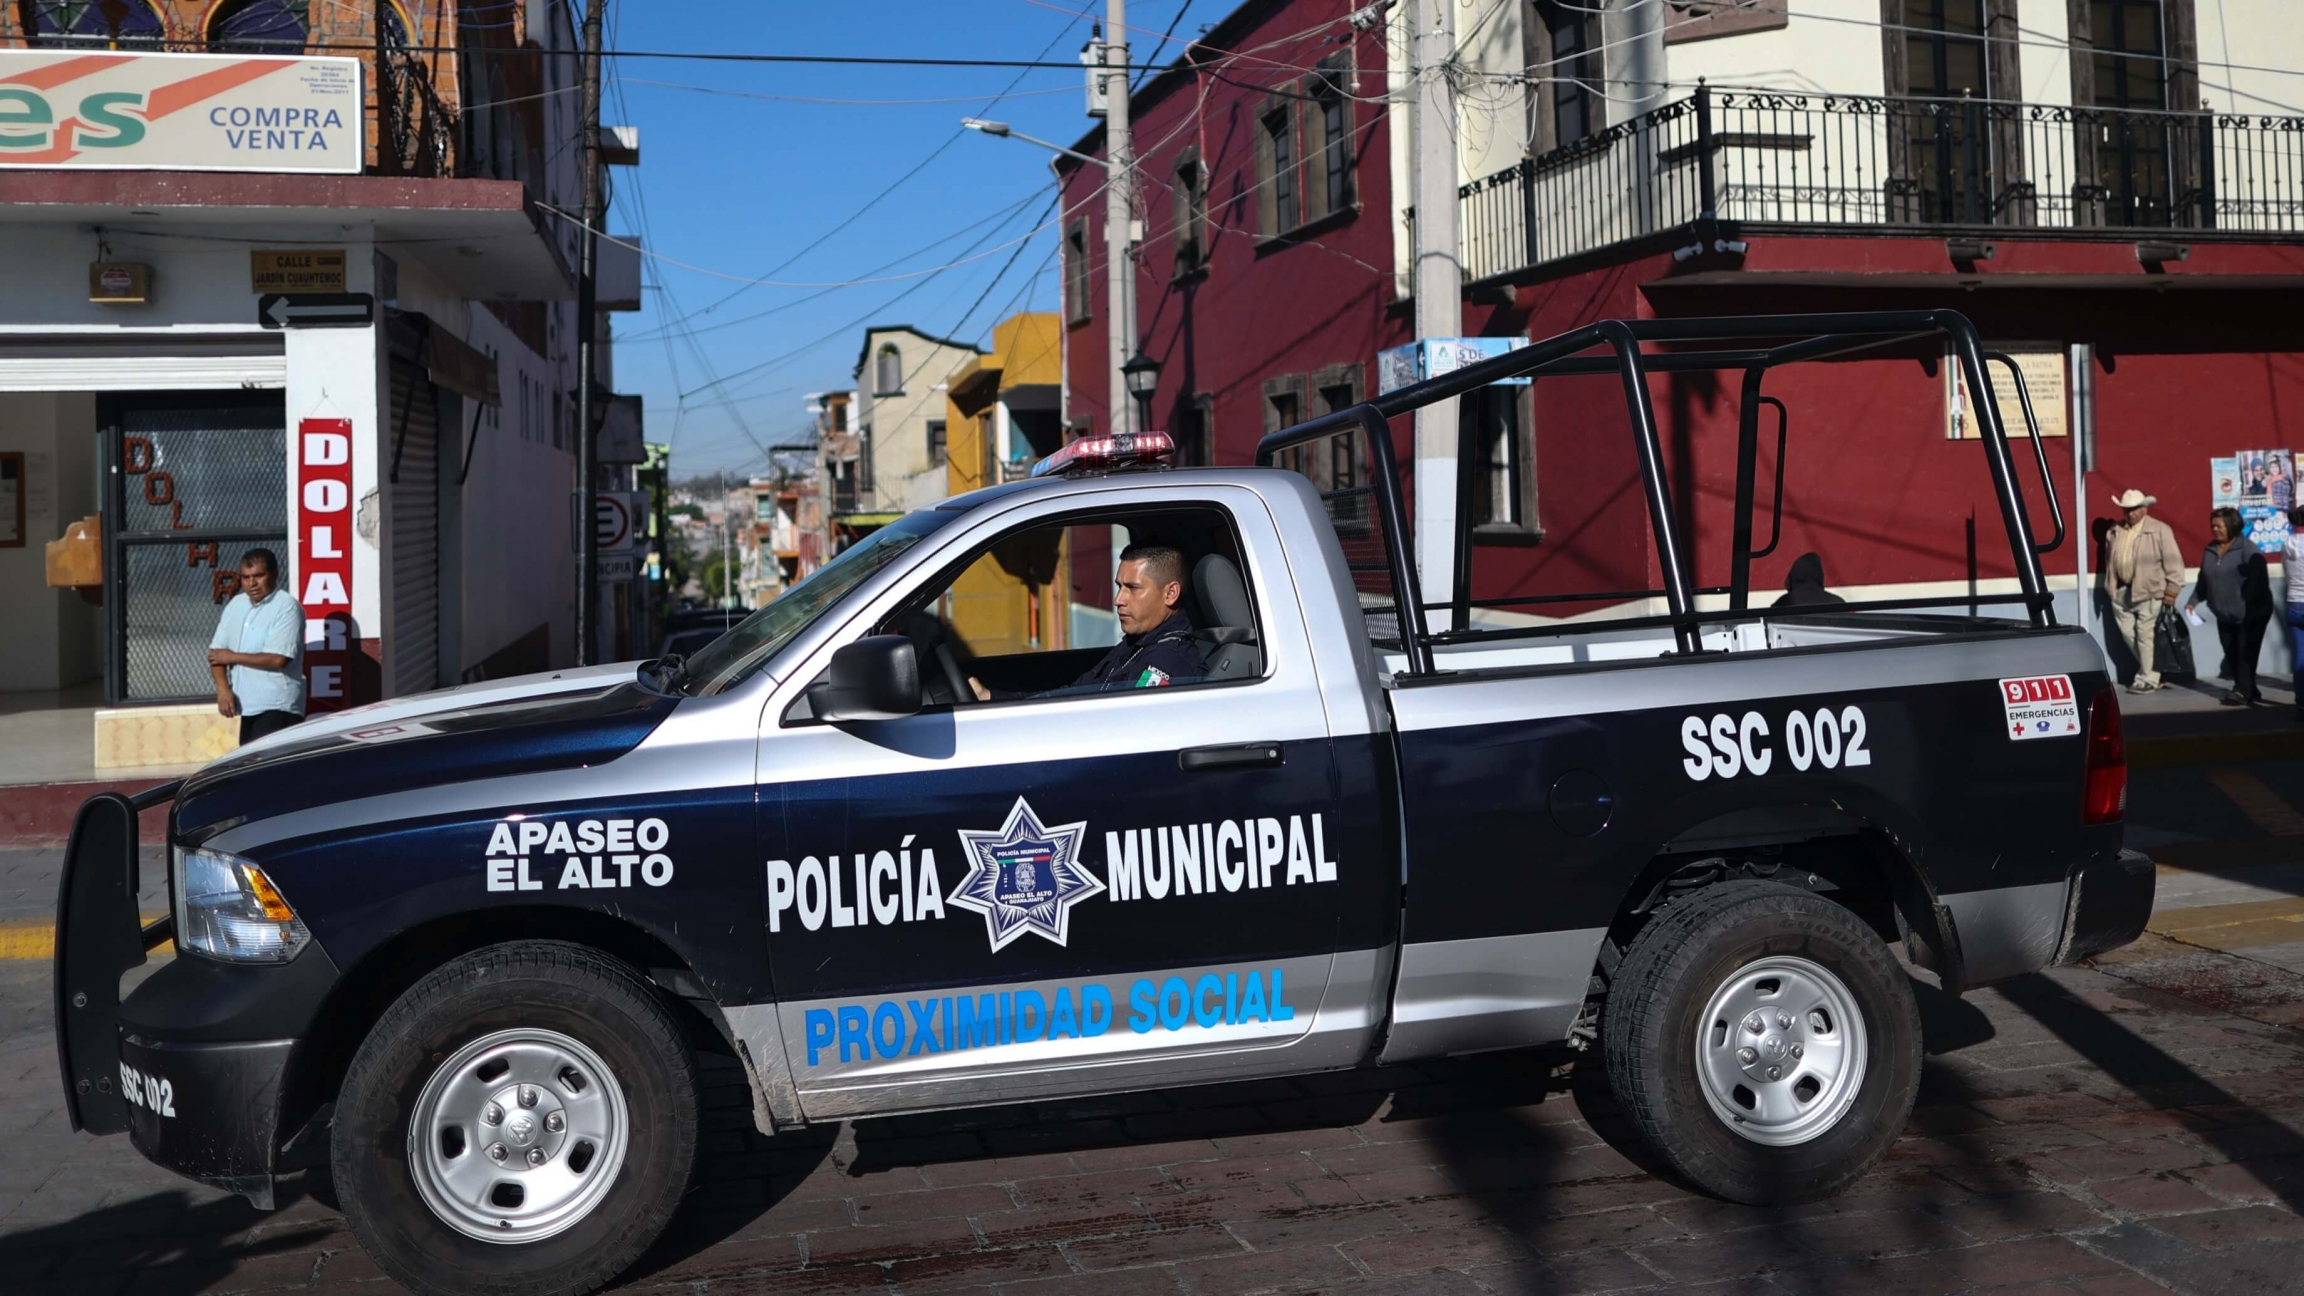 A police officer drives a large blue and white police vehicle through town